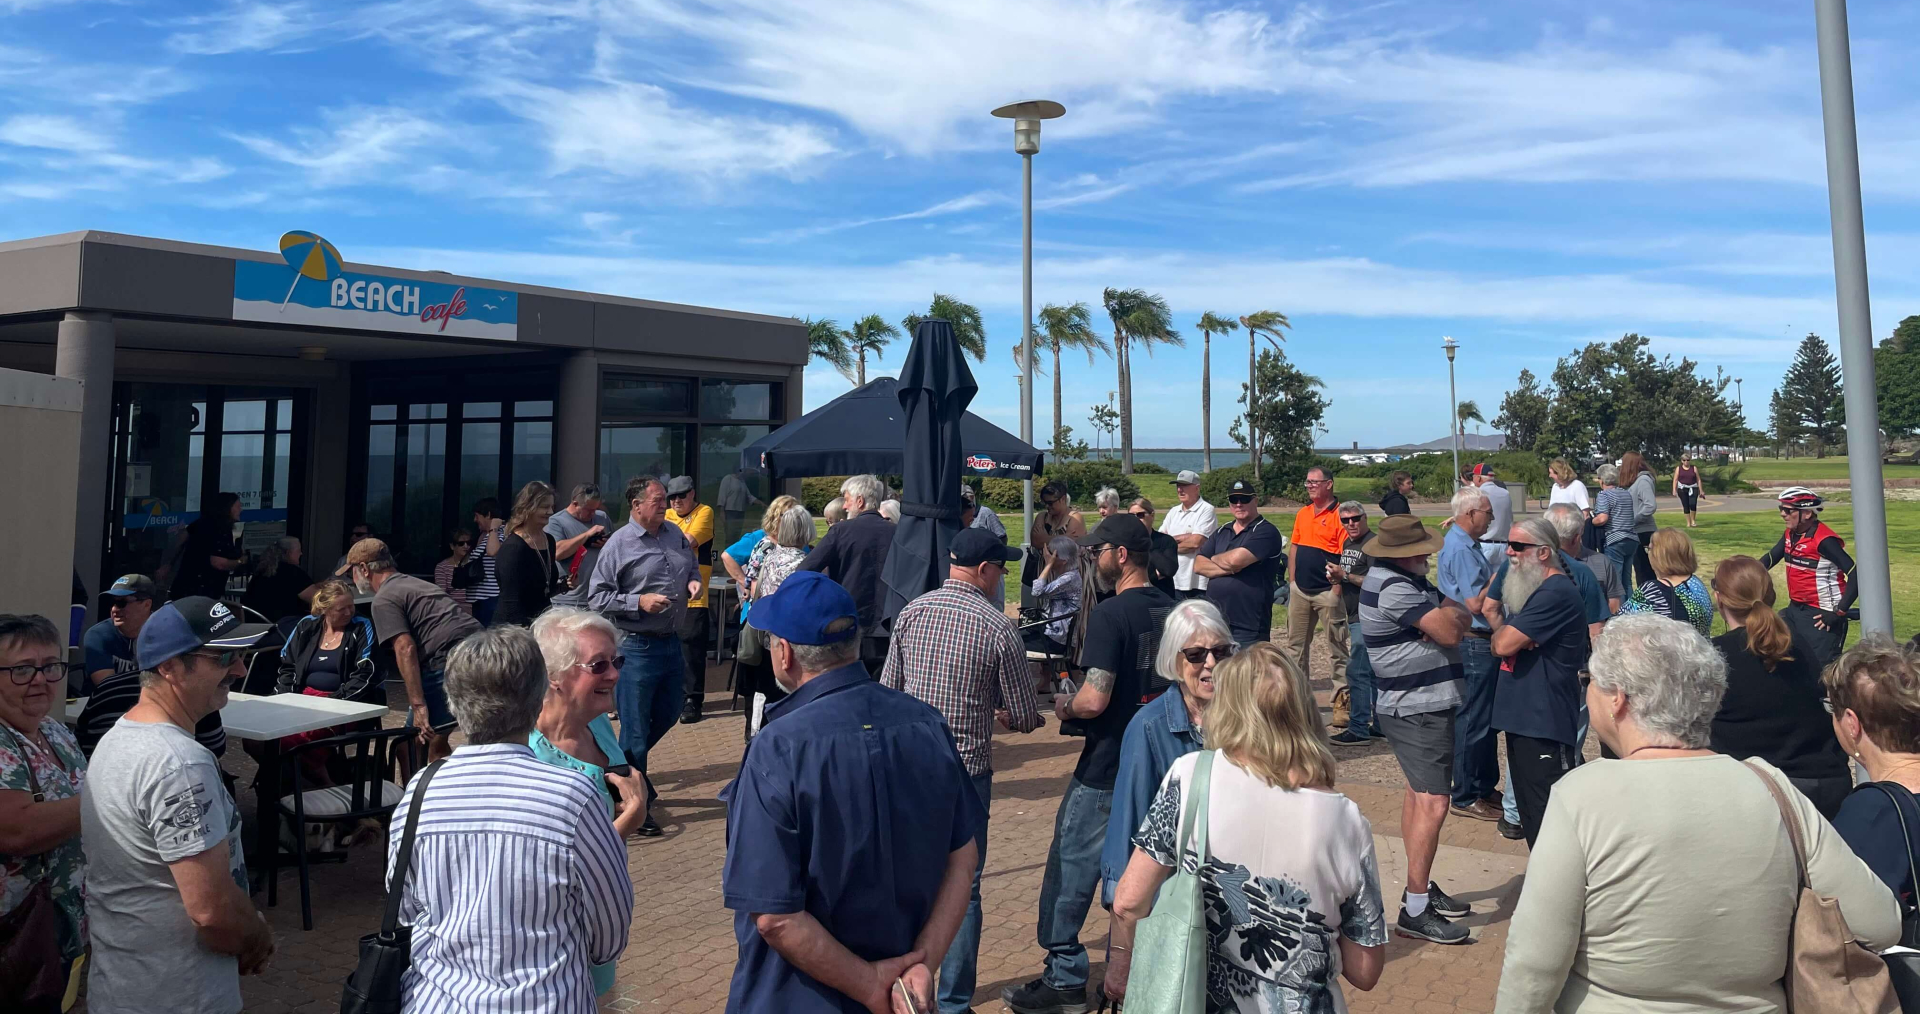 Yes, we must save Whyalla's Beach Café